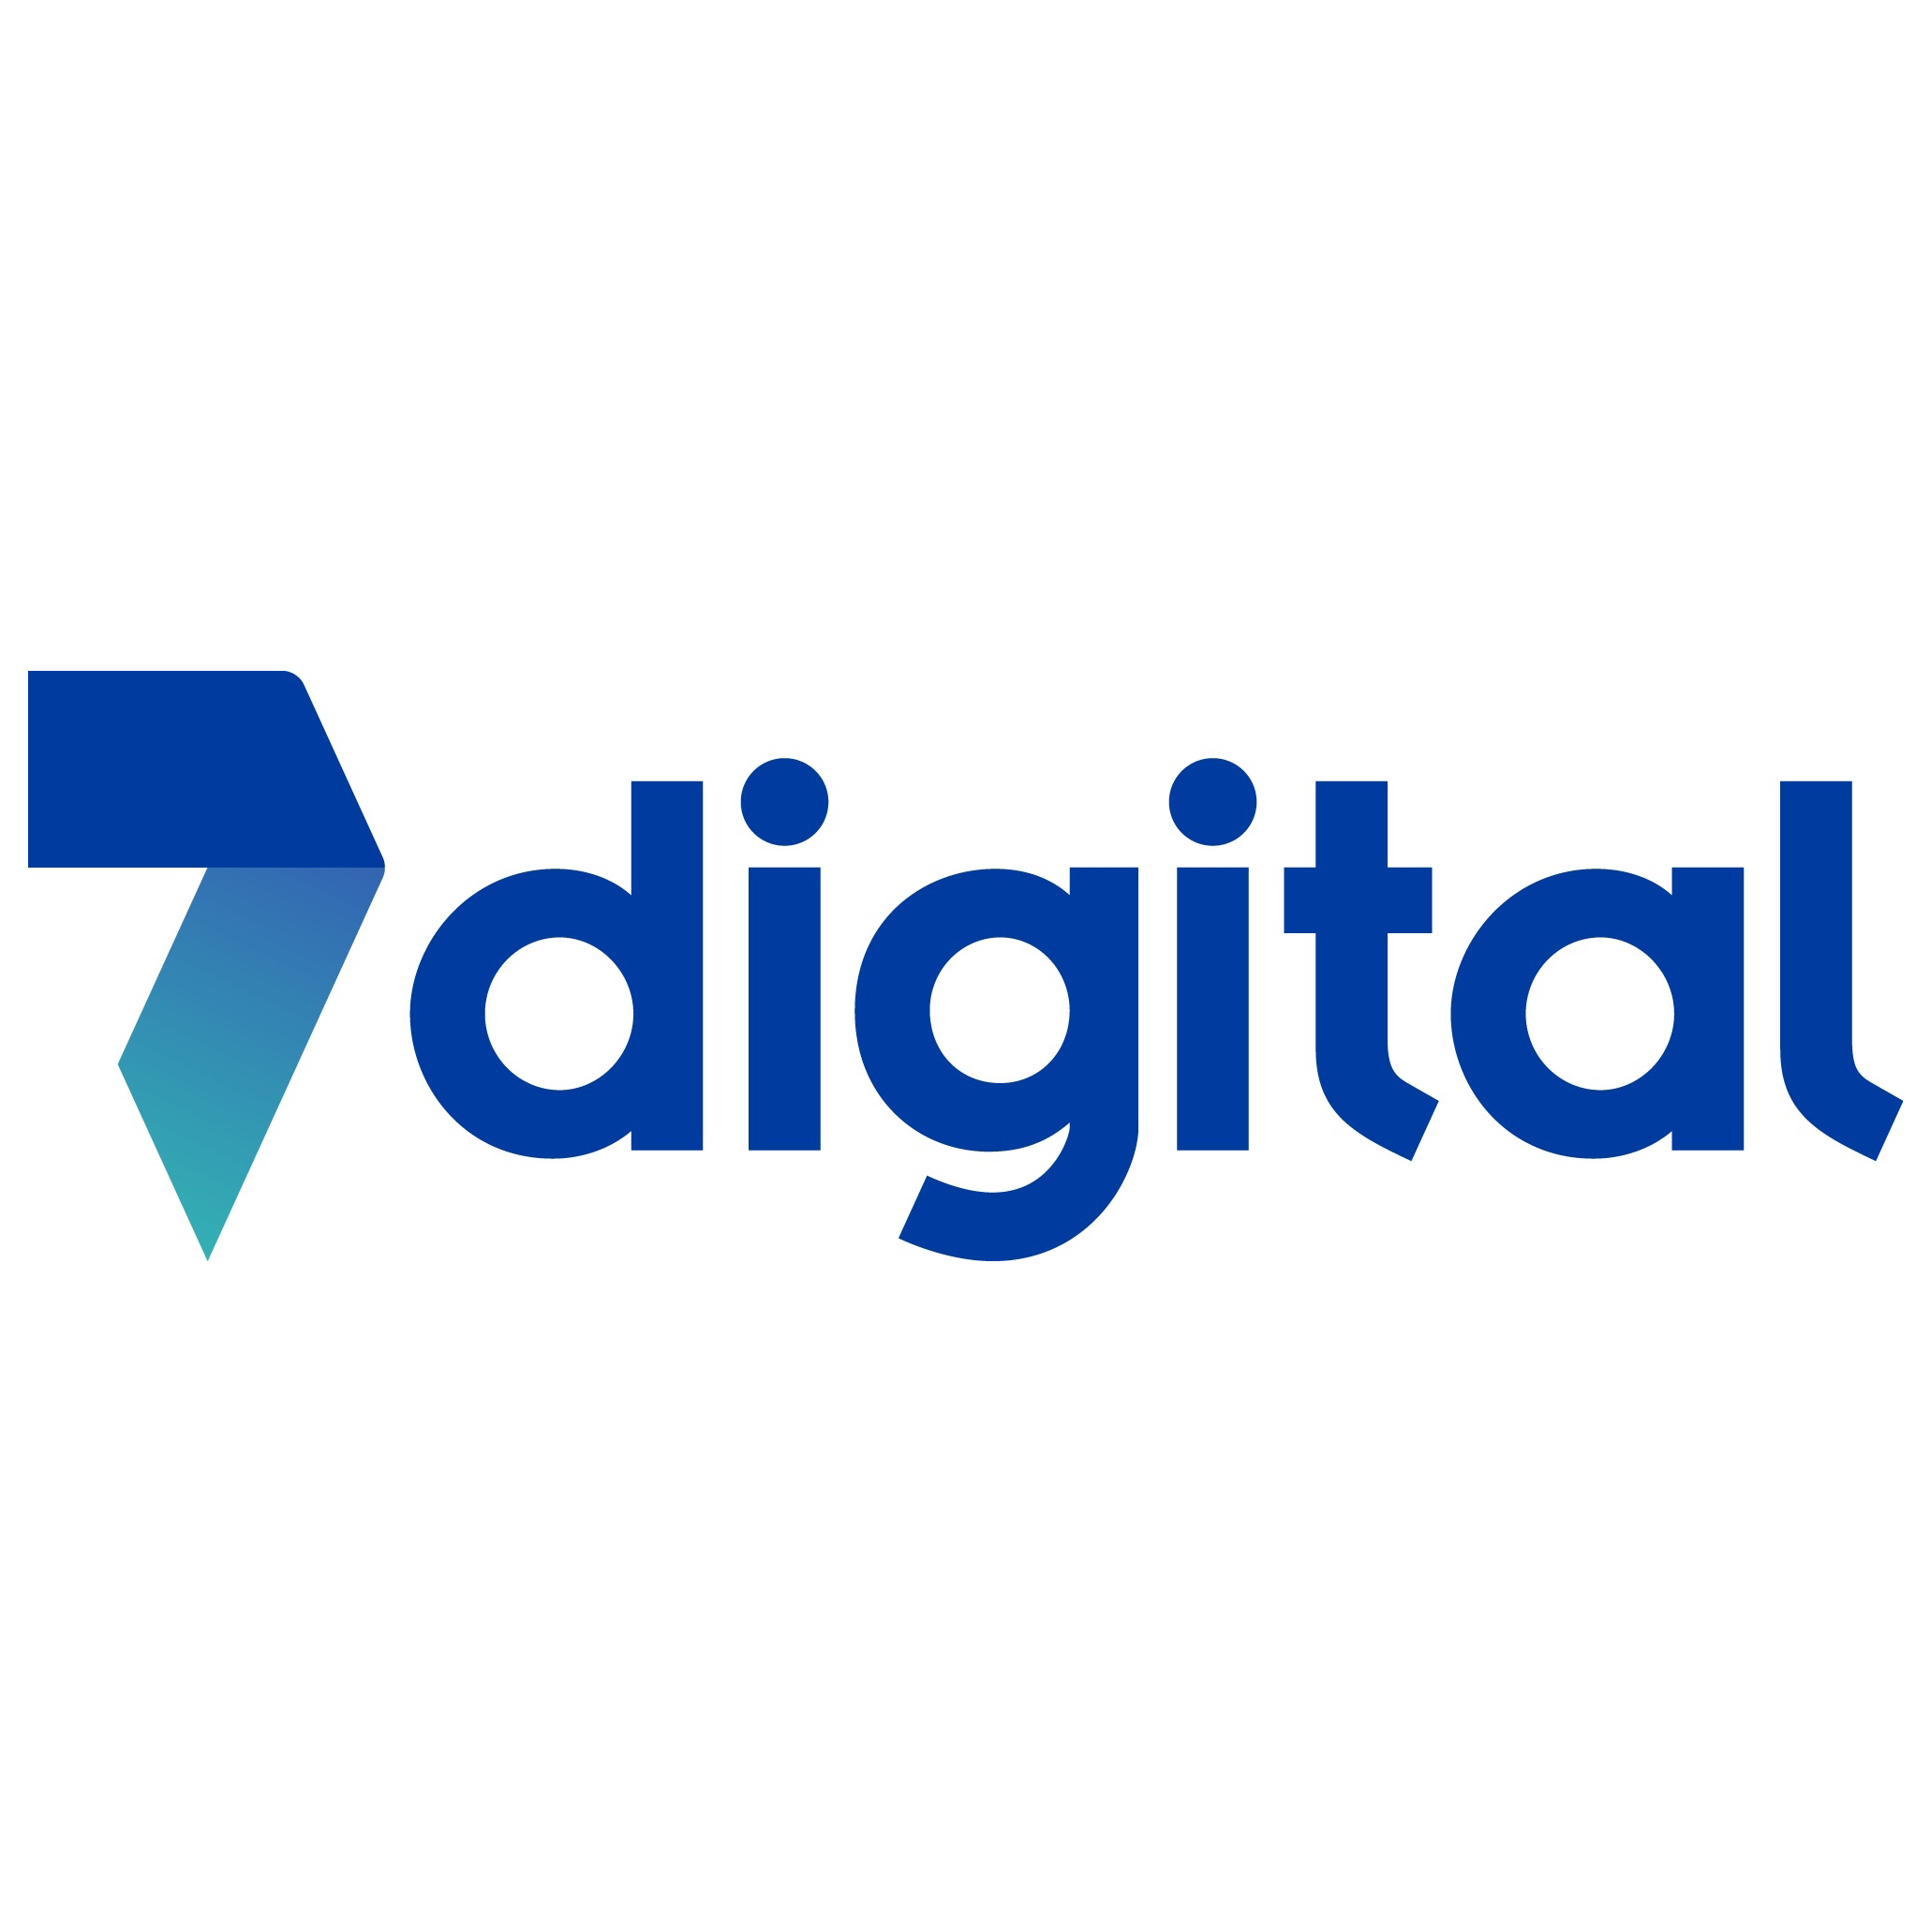 7digital logo_1 copy.jpg